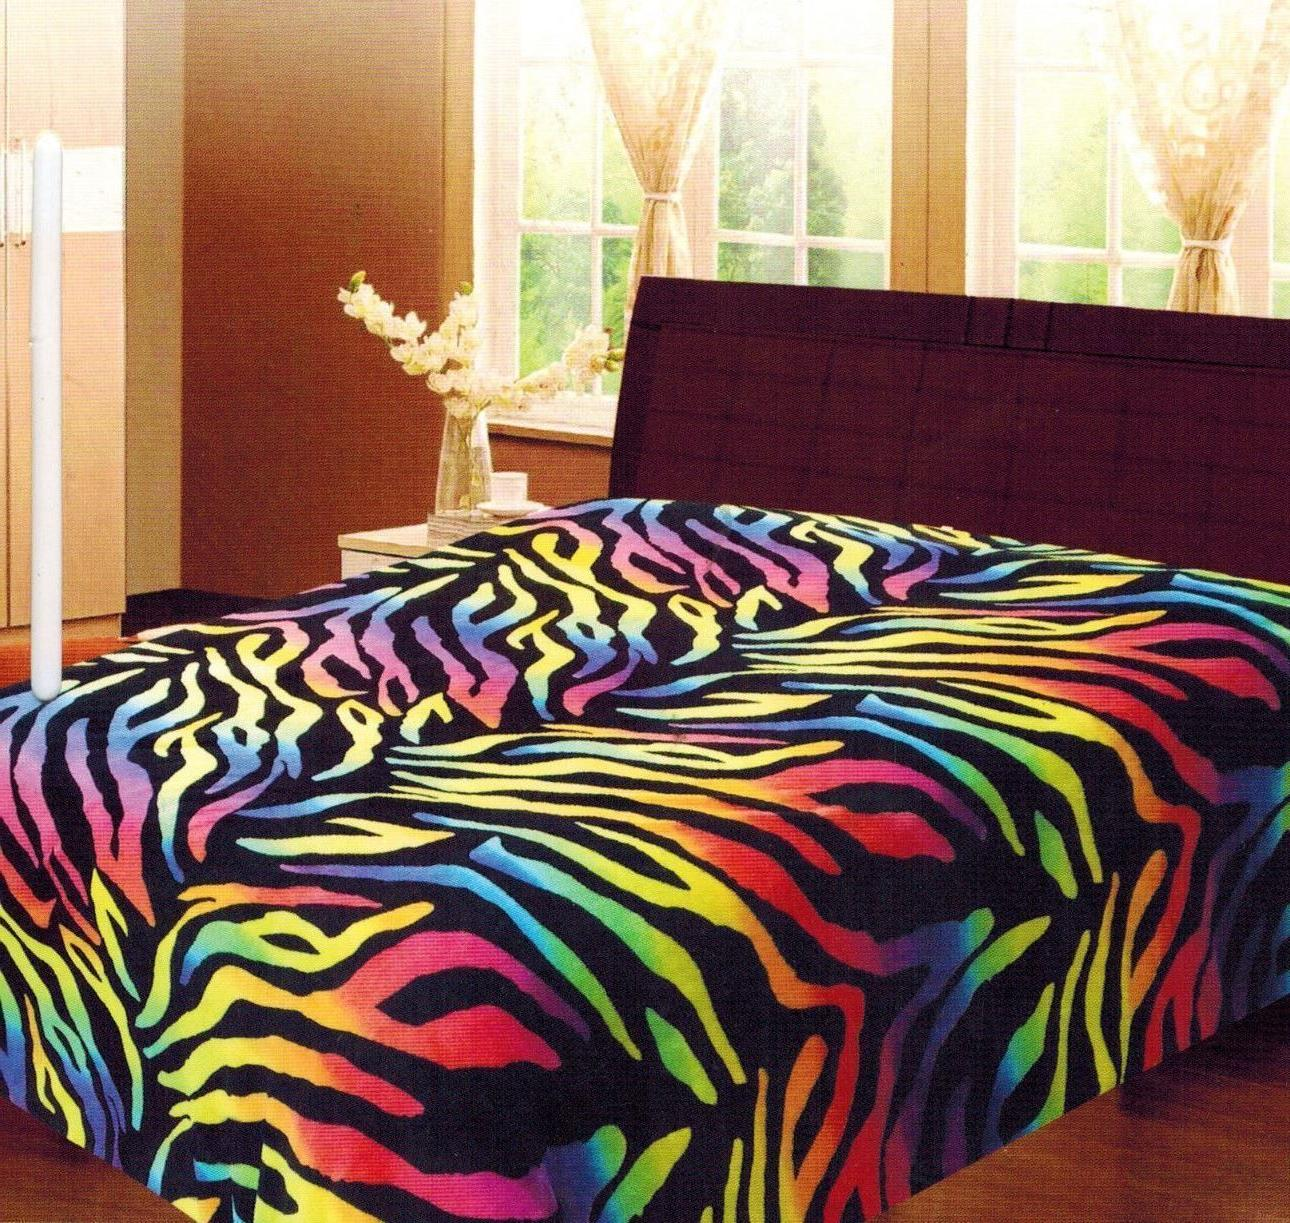 Rainbow Zebra Soft Fleece Blanket Queen Full Animal Print Mi